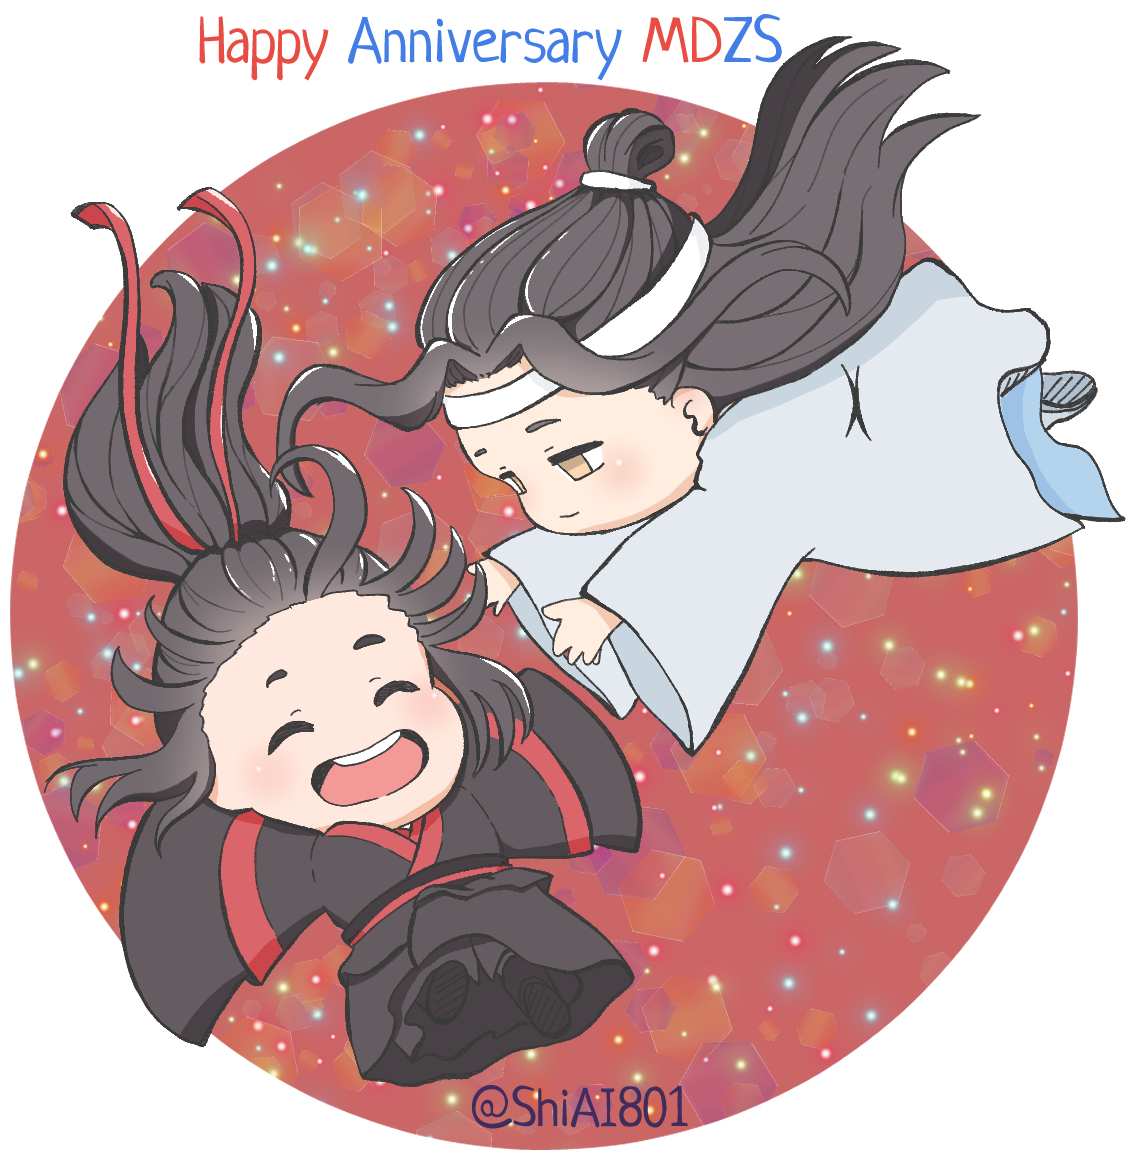 Happy 2° anniversary MDZS🎉🎉🎉🎉 #蓝湛 #LanZhan #LanWangji #蓝忘机 #魏无羡 #WeiWuxian #WeiYing #魏婴 #modaozushi #魔道祖师 #마도조사 #ปรมาจารย์ลัทธิมาร  #MaDaoToSu #grandmasterofdemoniccultivation #MDZS #chibi #ちび #かわいい #cute #kawai https://t.co/fBoPdxfGSH